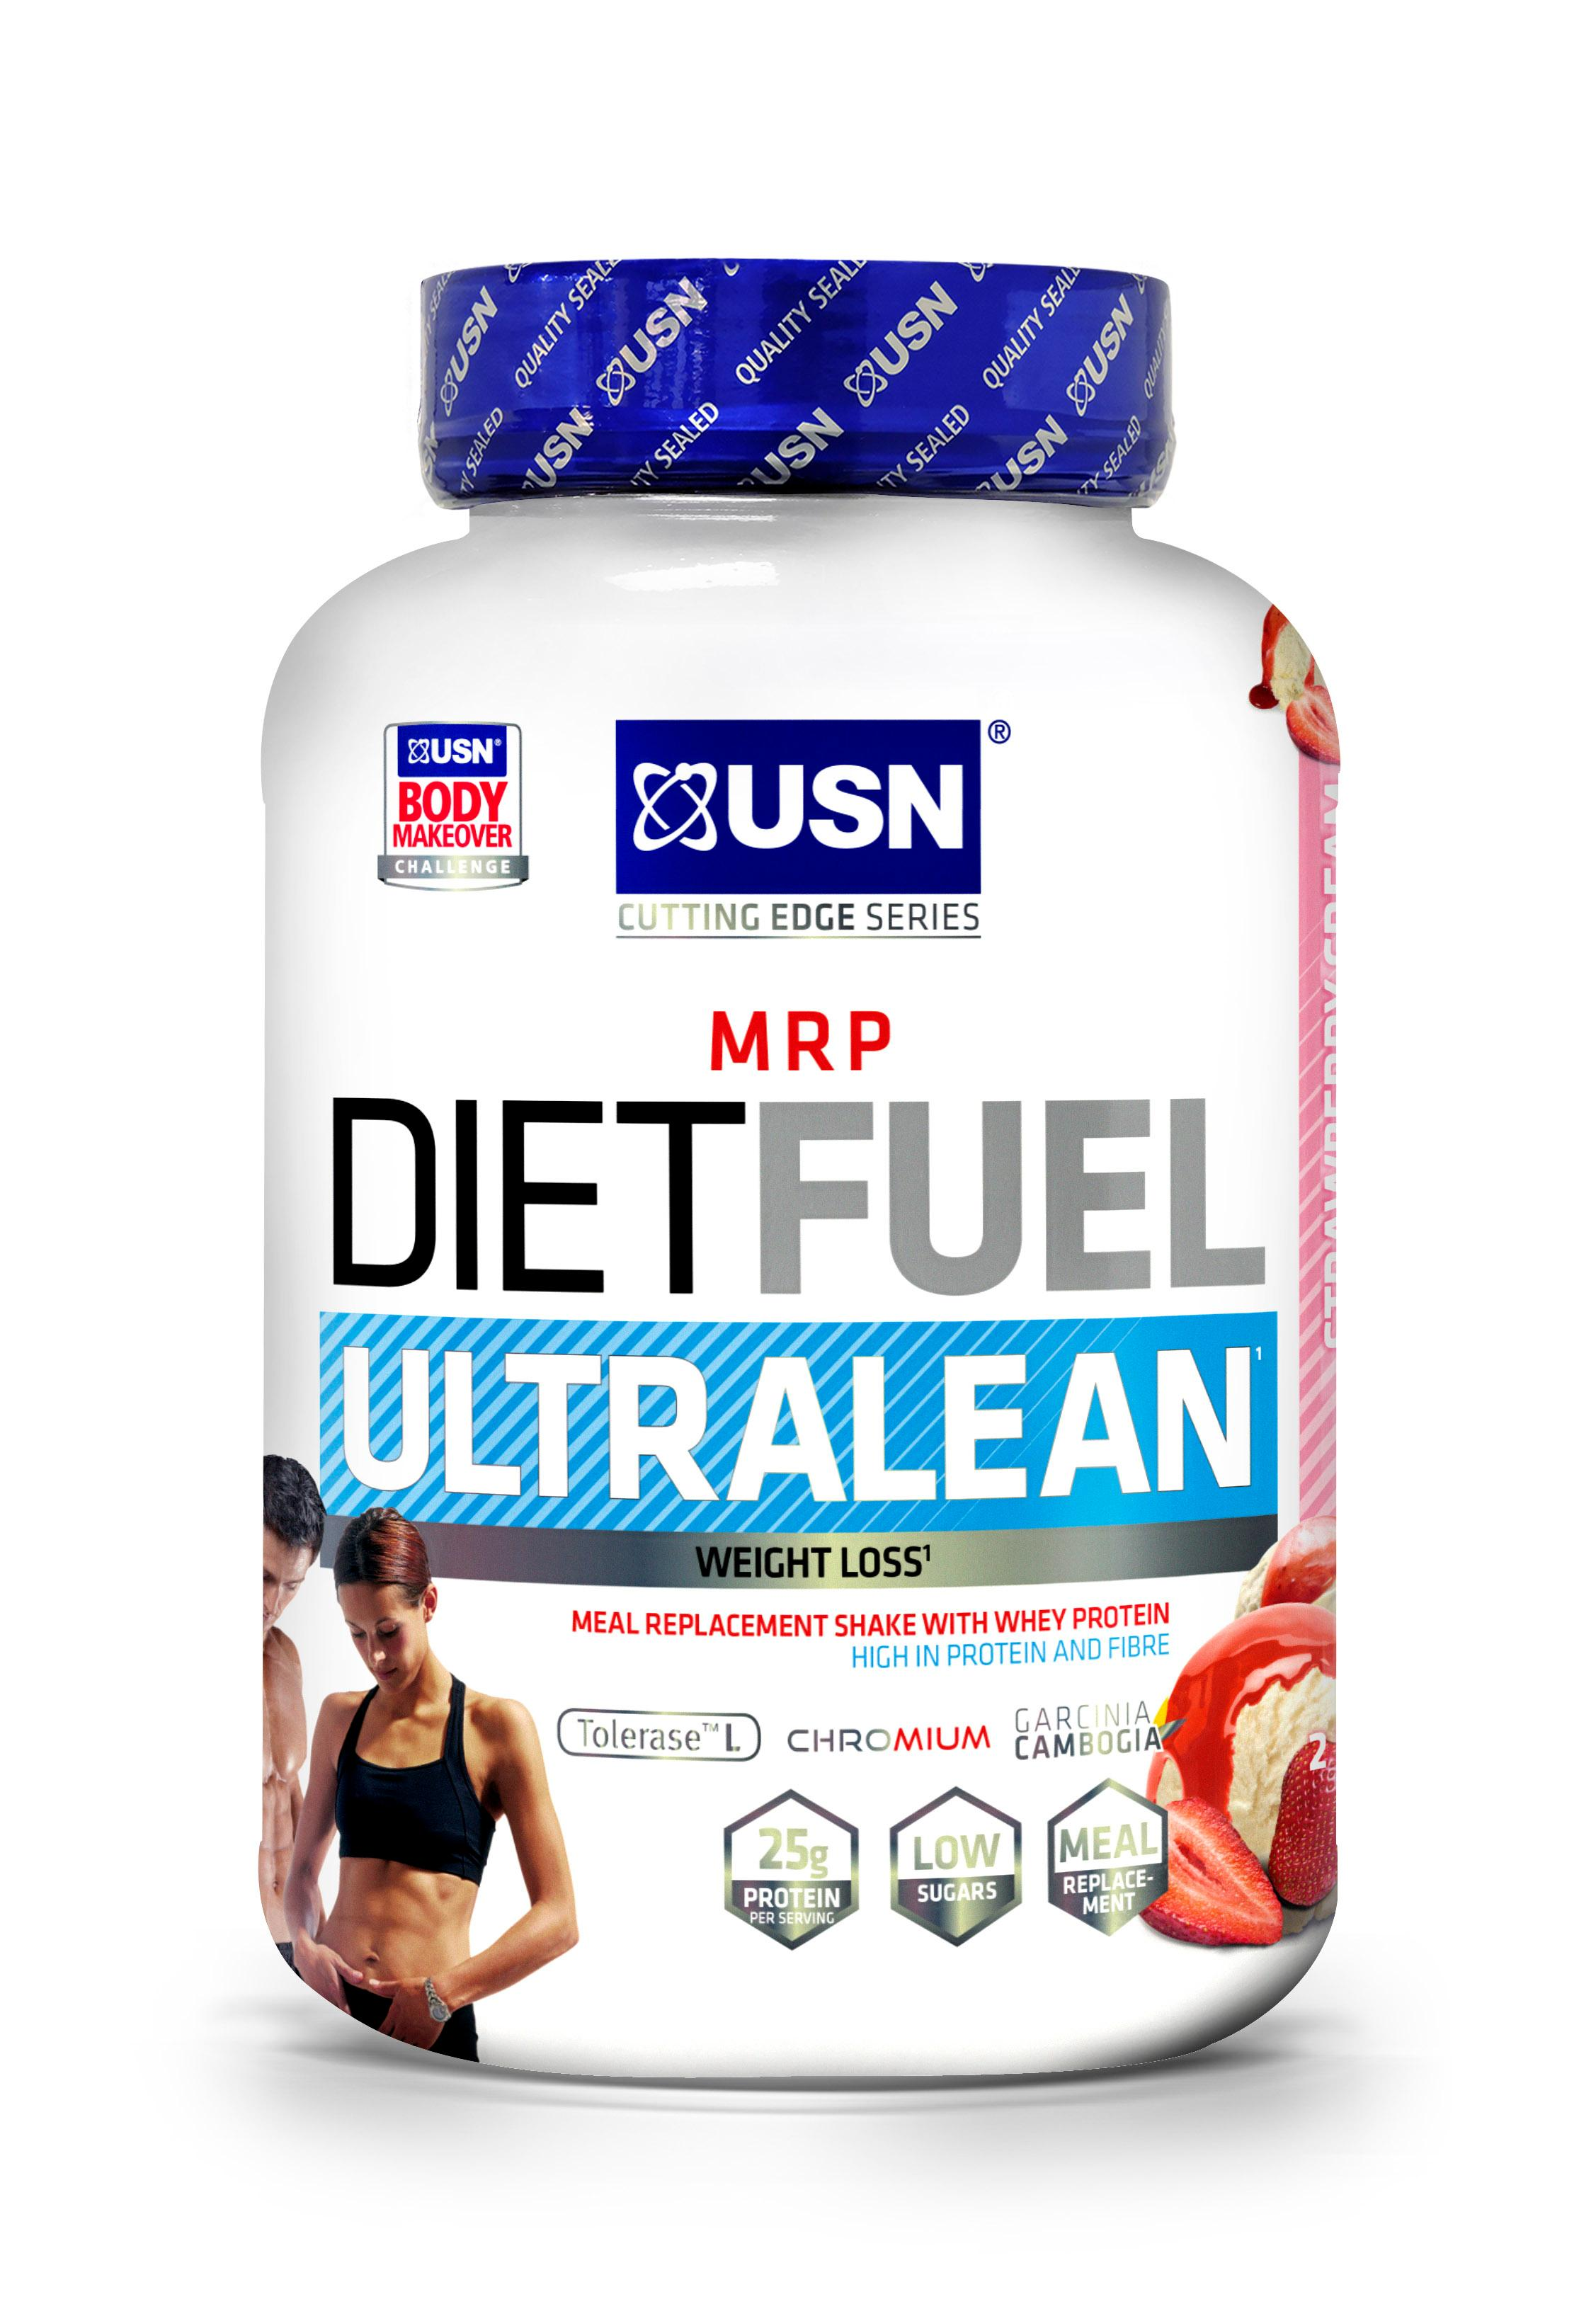 Usn Meal Replacement Shakes For Weight Loss South Africa Berry Blog